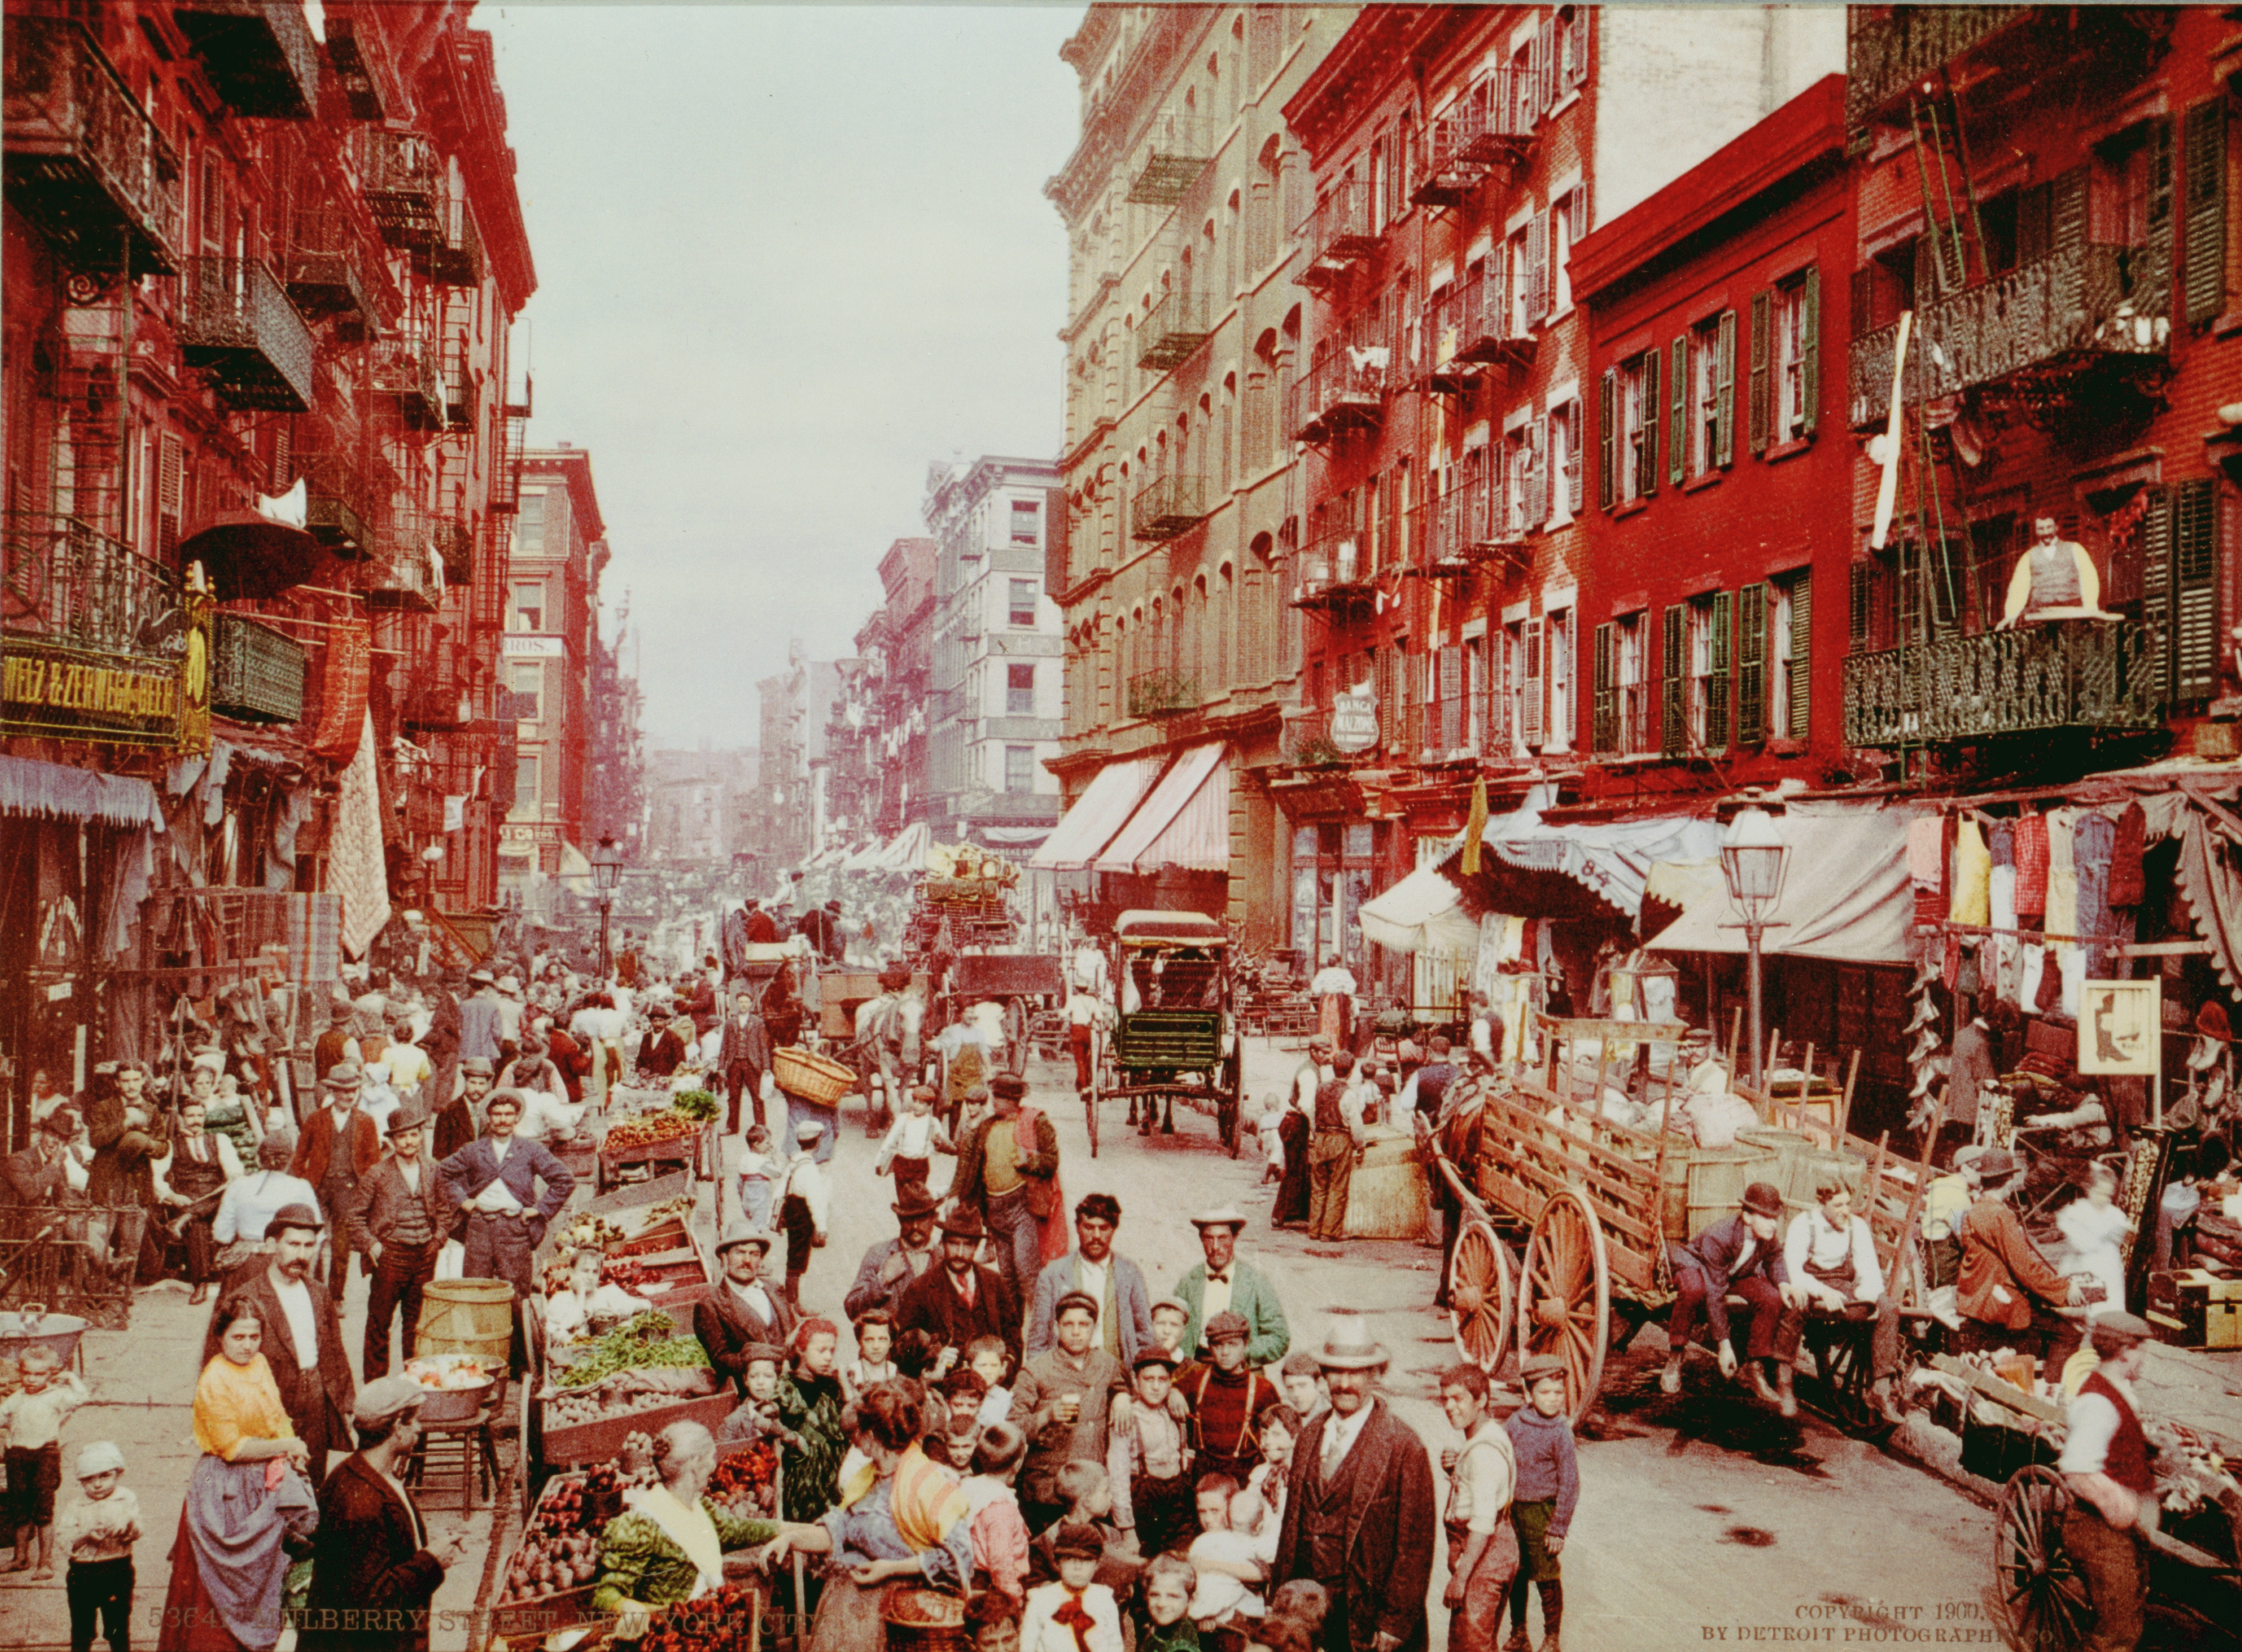 Old New York In Photos #28 - New York City Early Color Photos